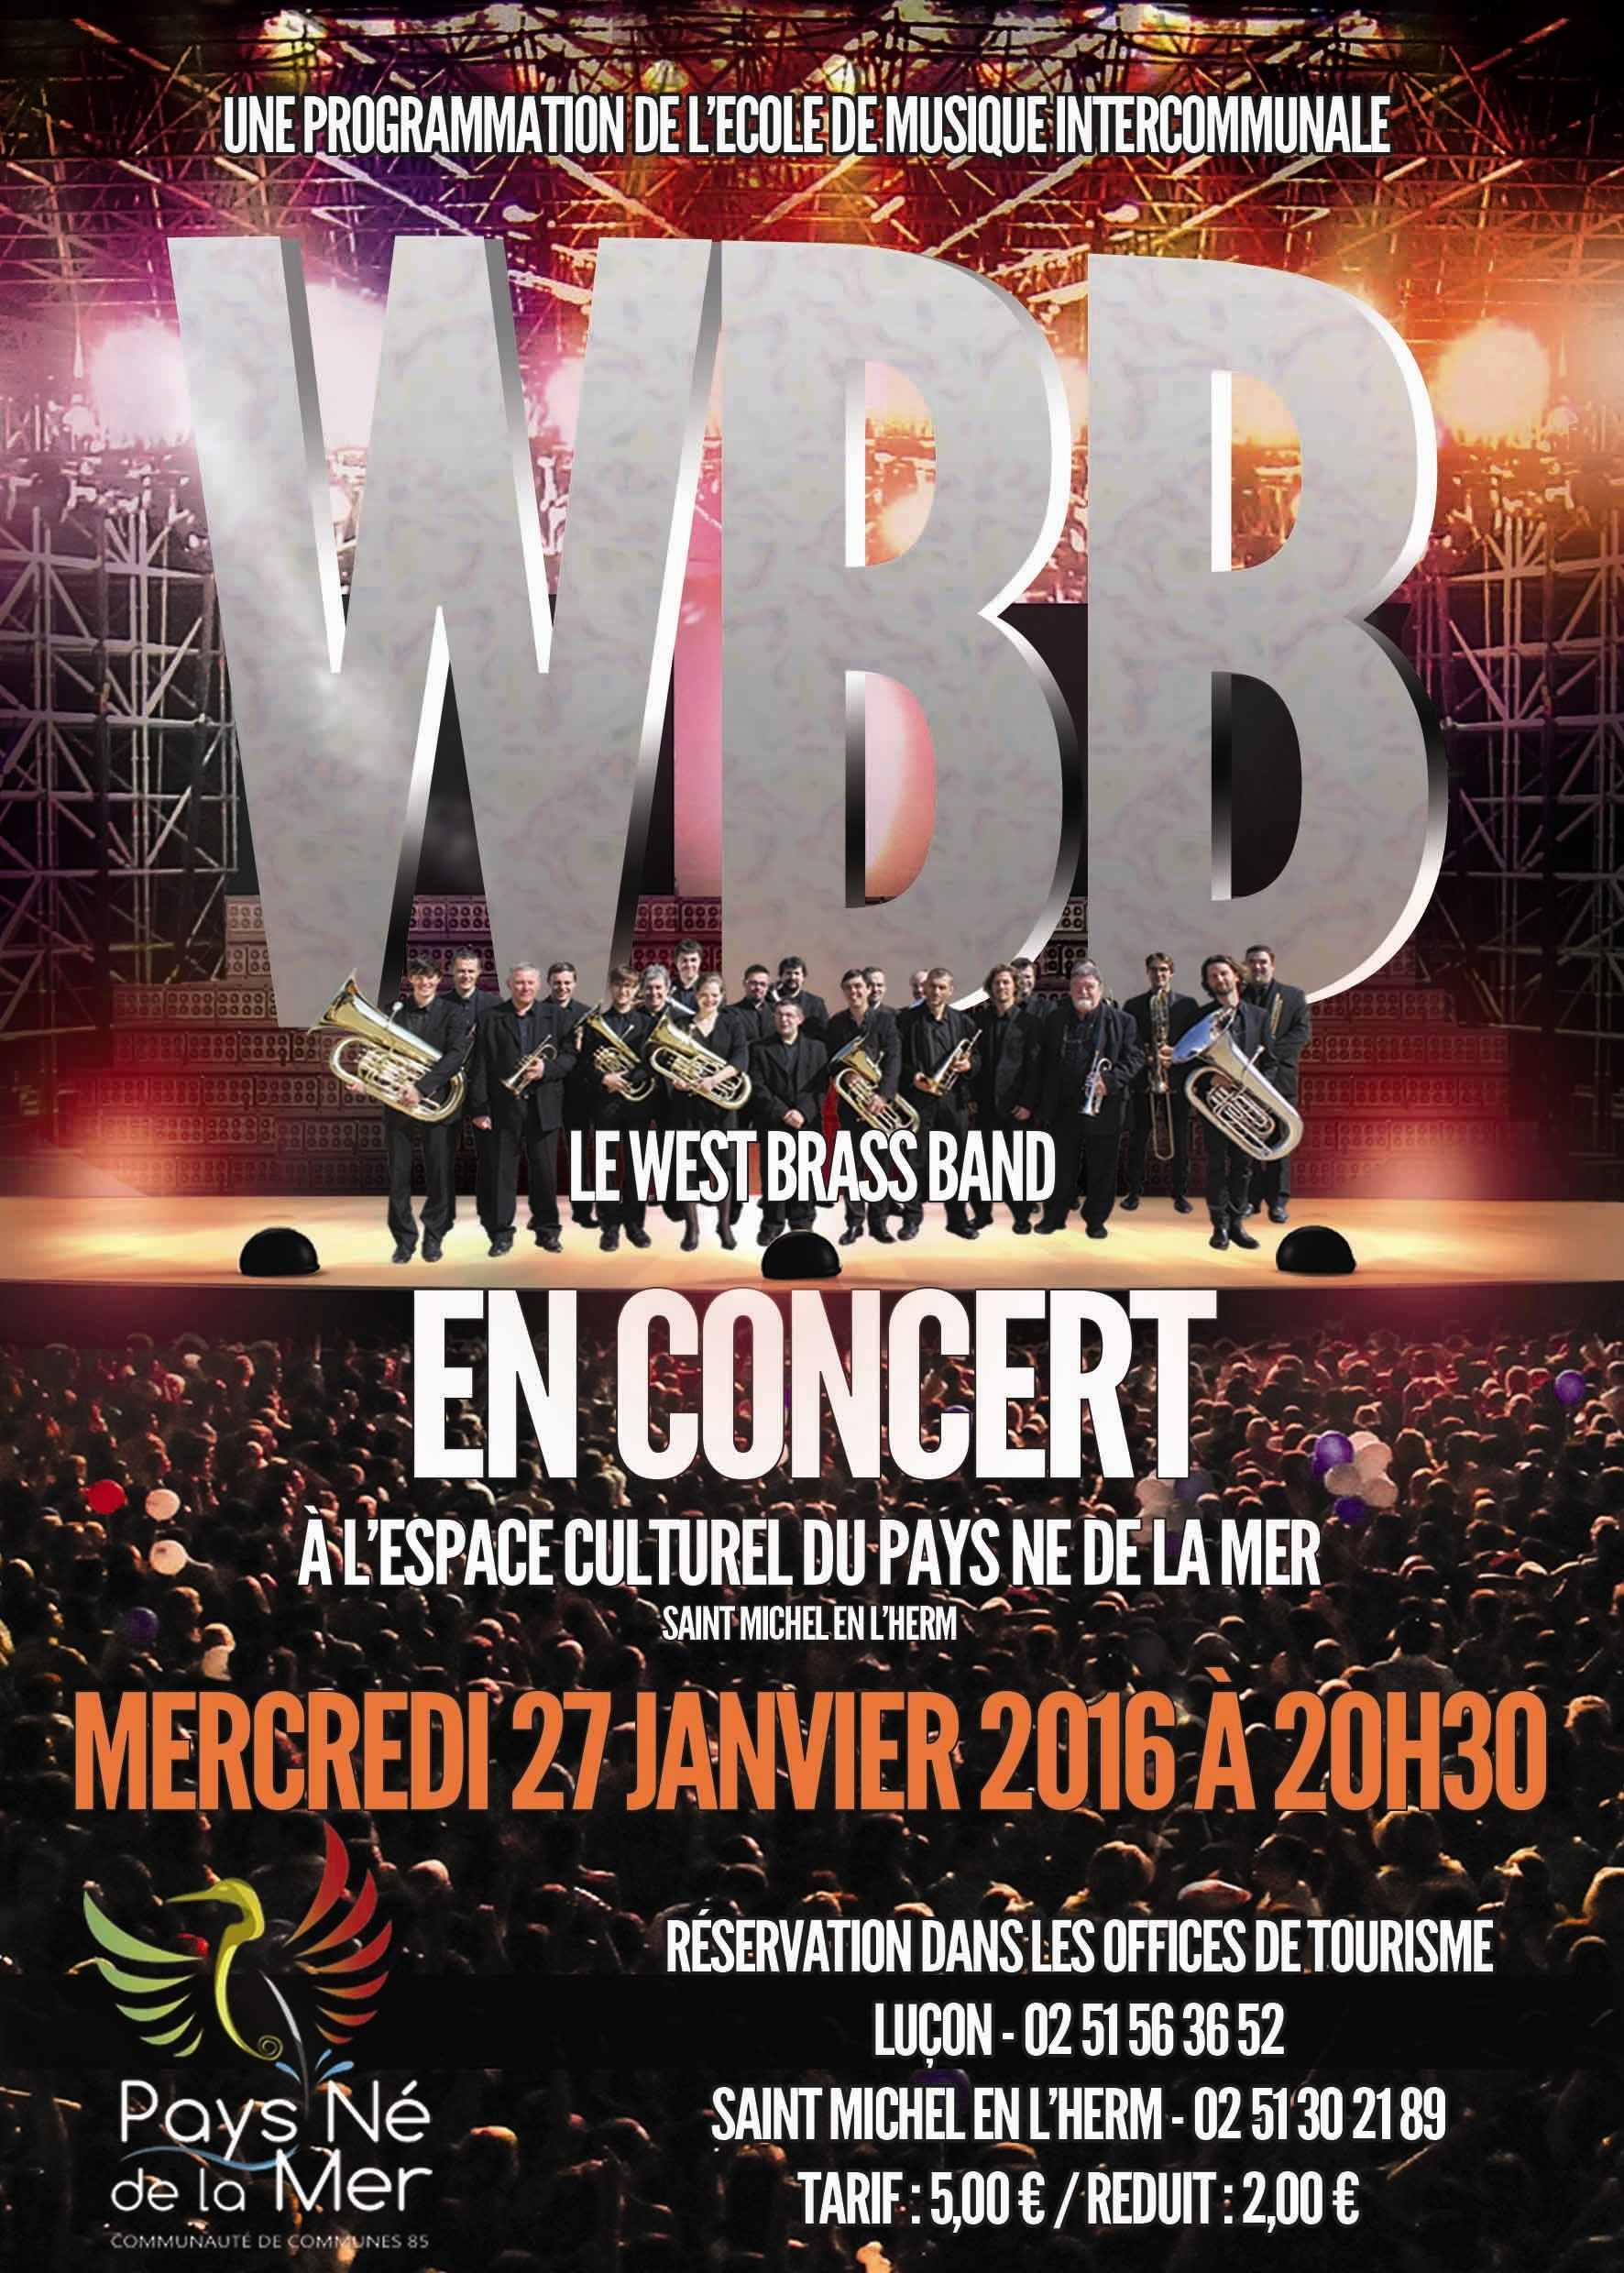 Le West Brass Band en concert Saint-Michel-en-l'Herm